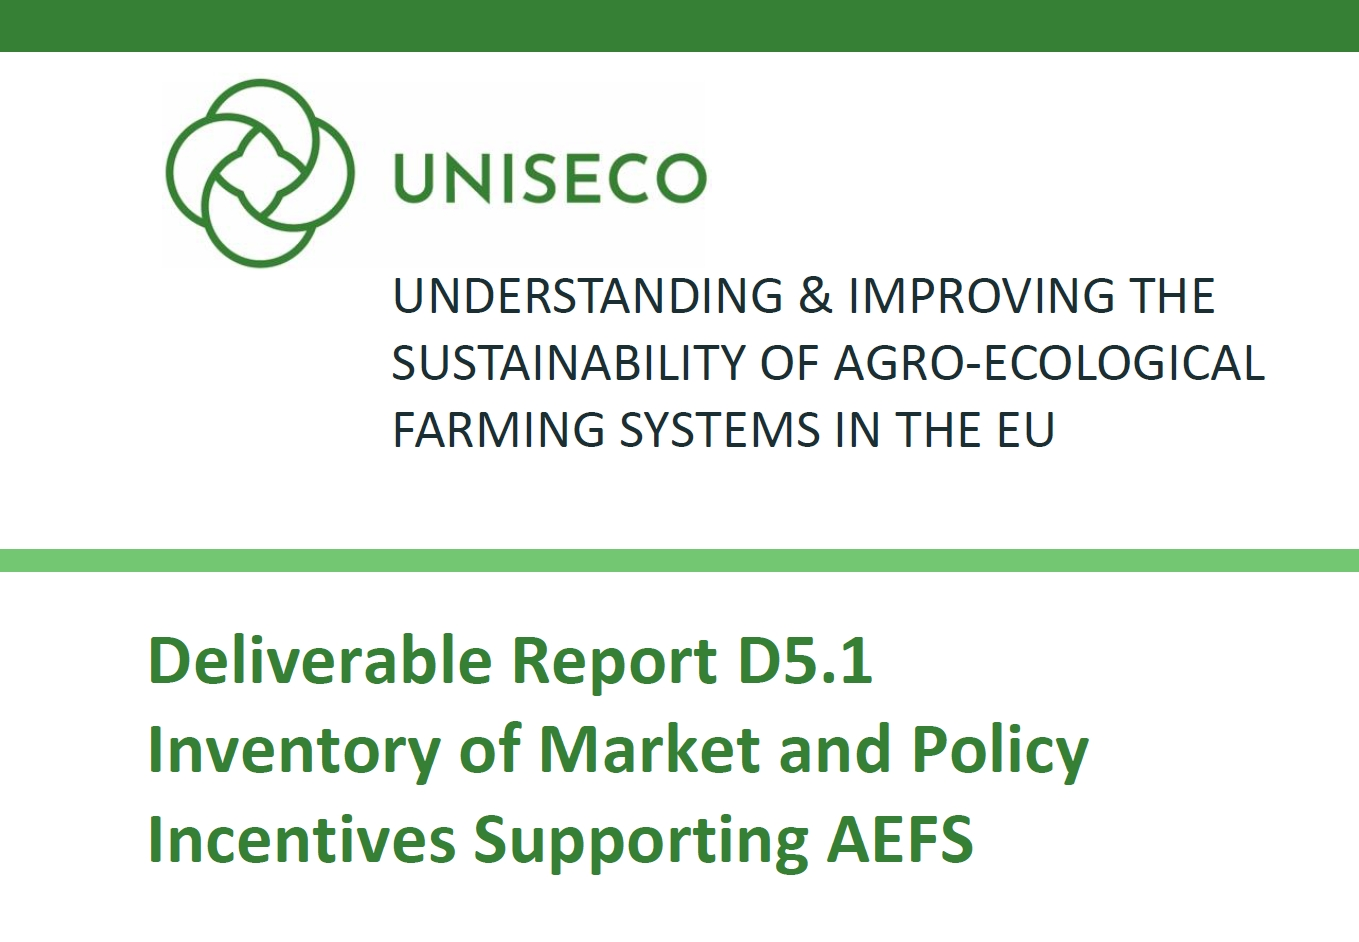 D5.1 Inventory of Market and Policy Incentives Supporting AEFS published